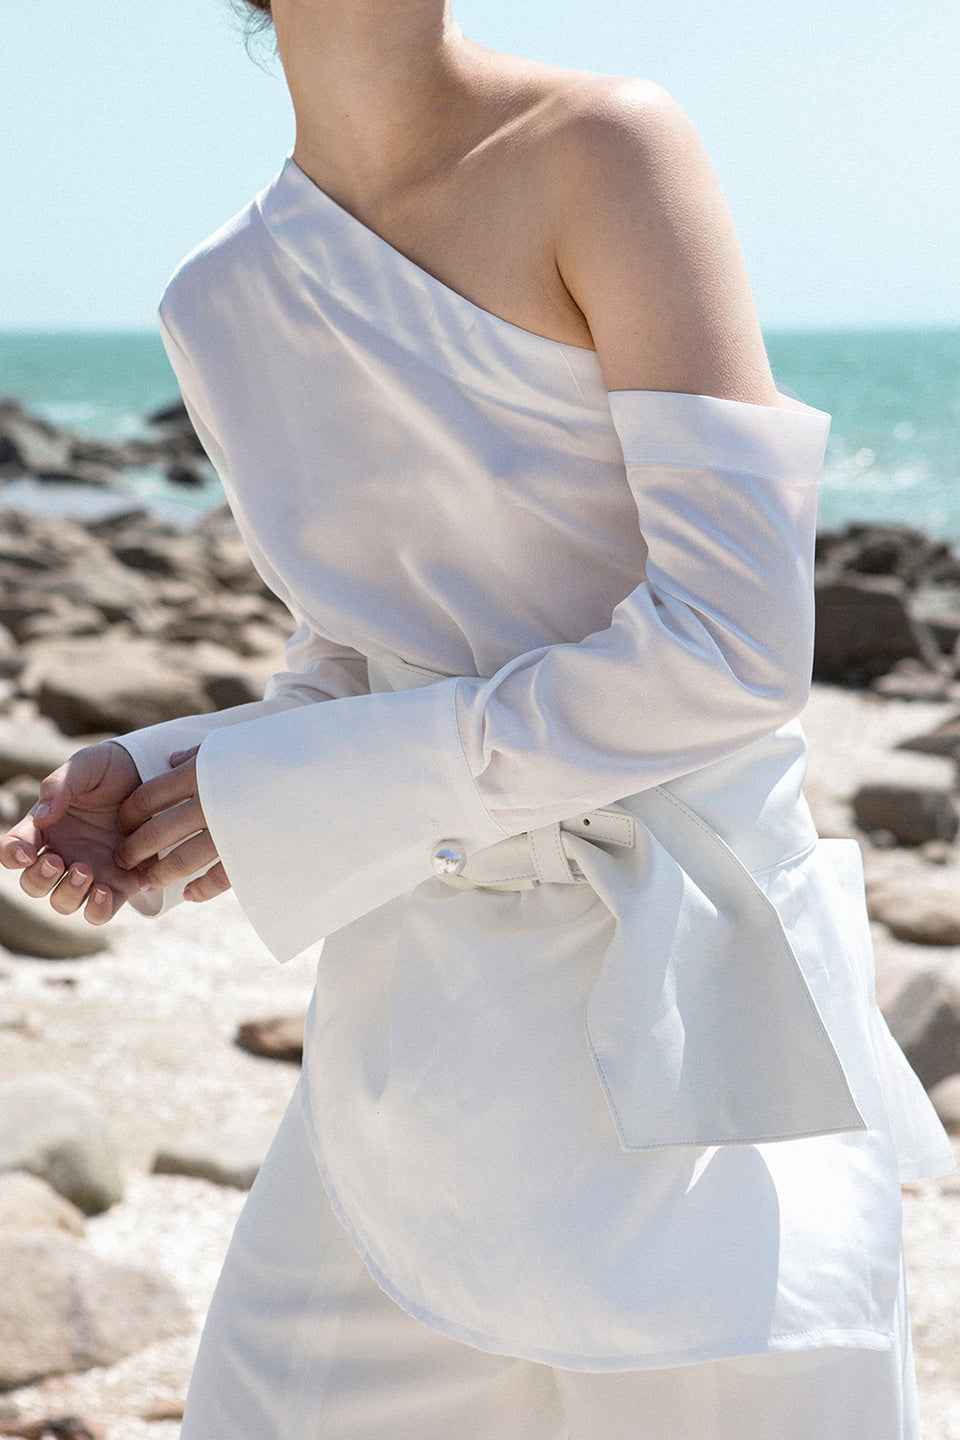 The Roslyn Top in white featuring one shoulder with long sleeves, pearl hardware button at cuffs, elastic band at back. Pull on.